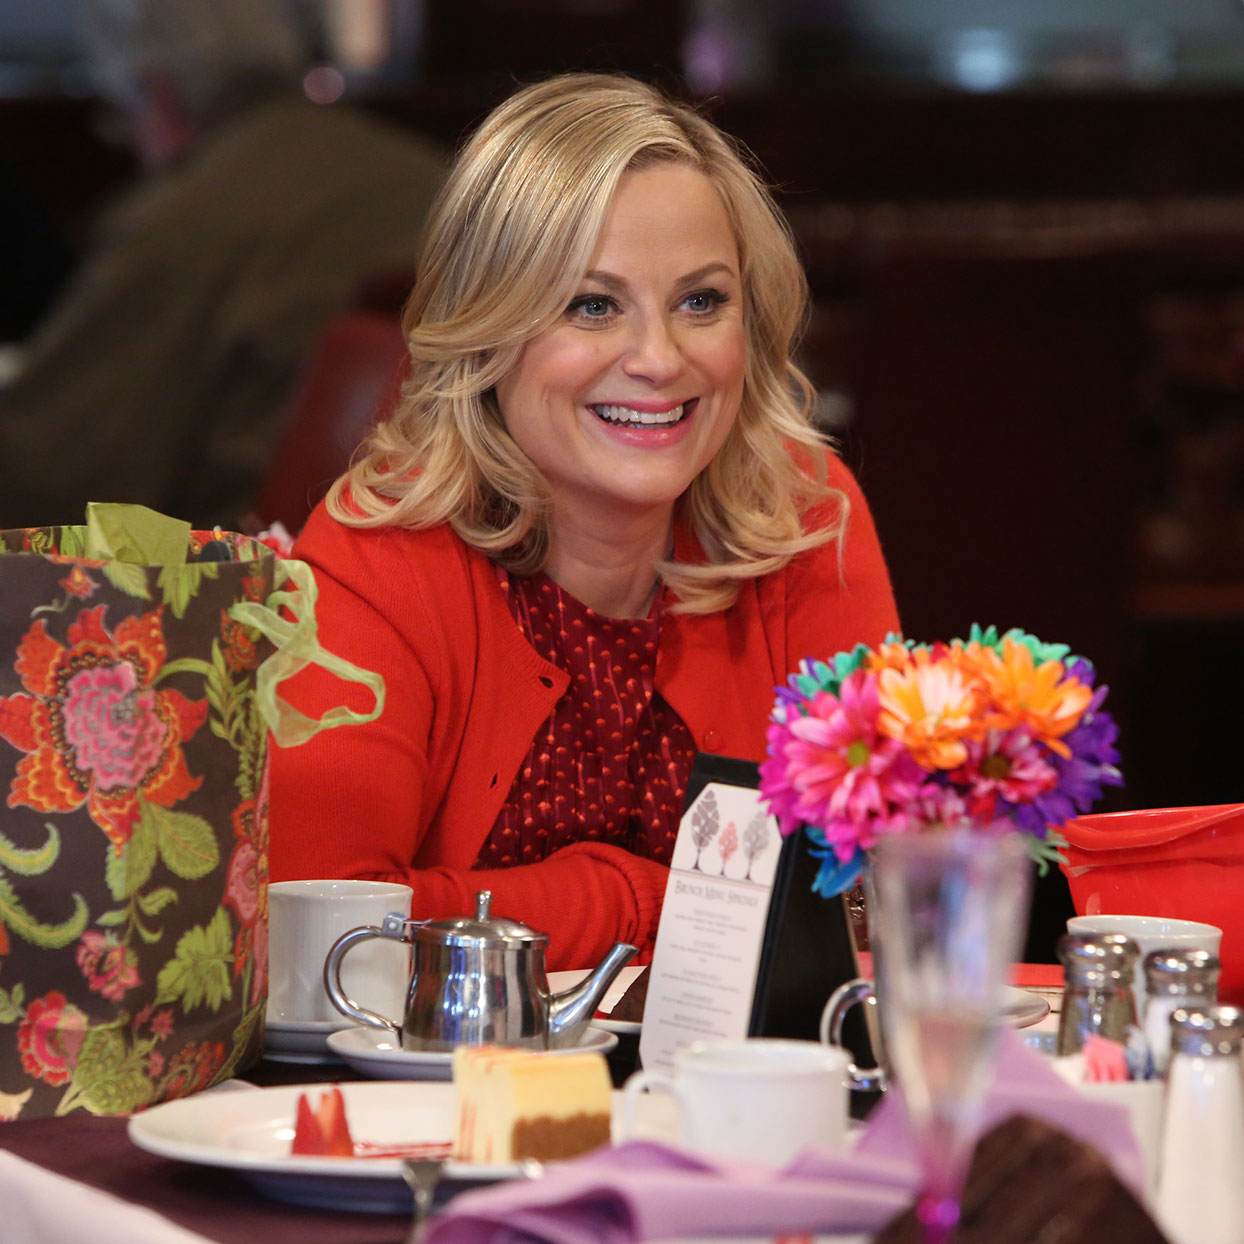 Leslie Knope sitting at a table at a party